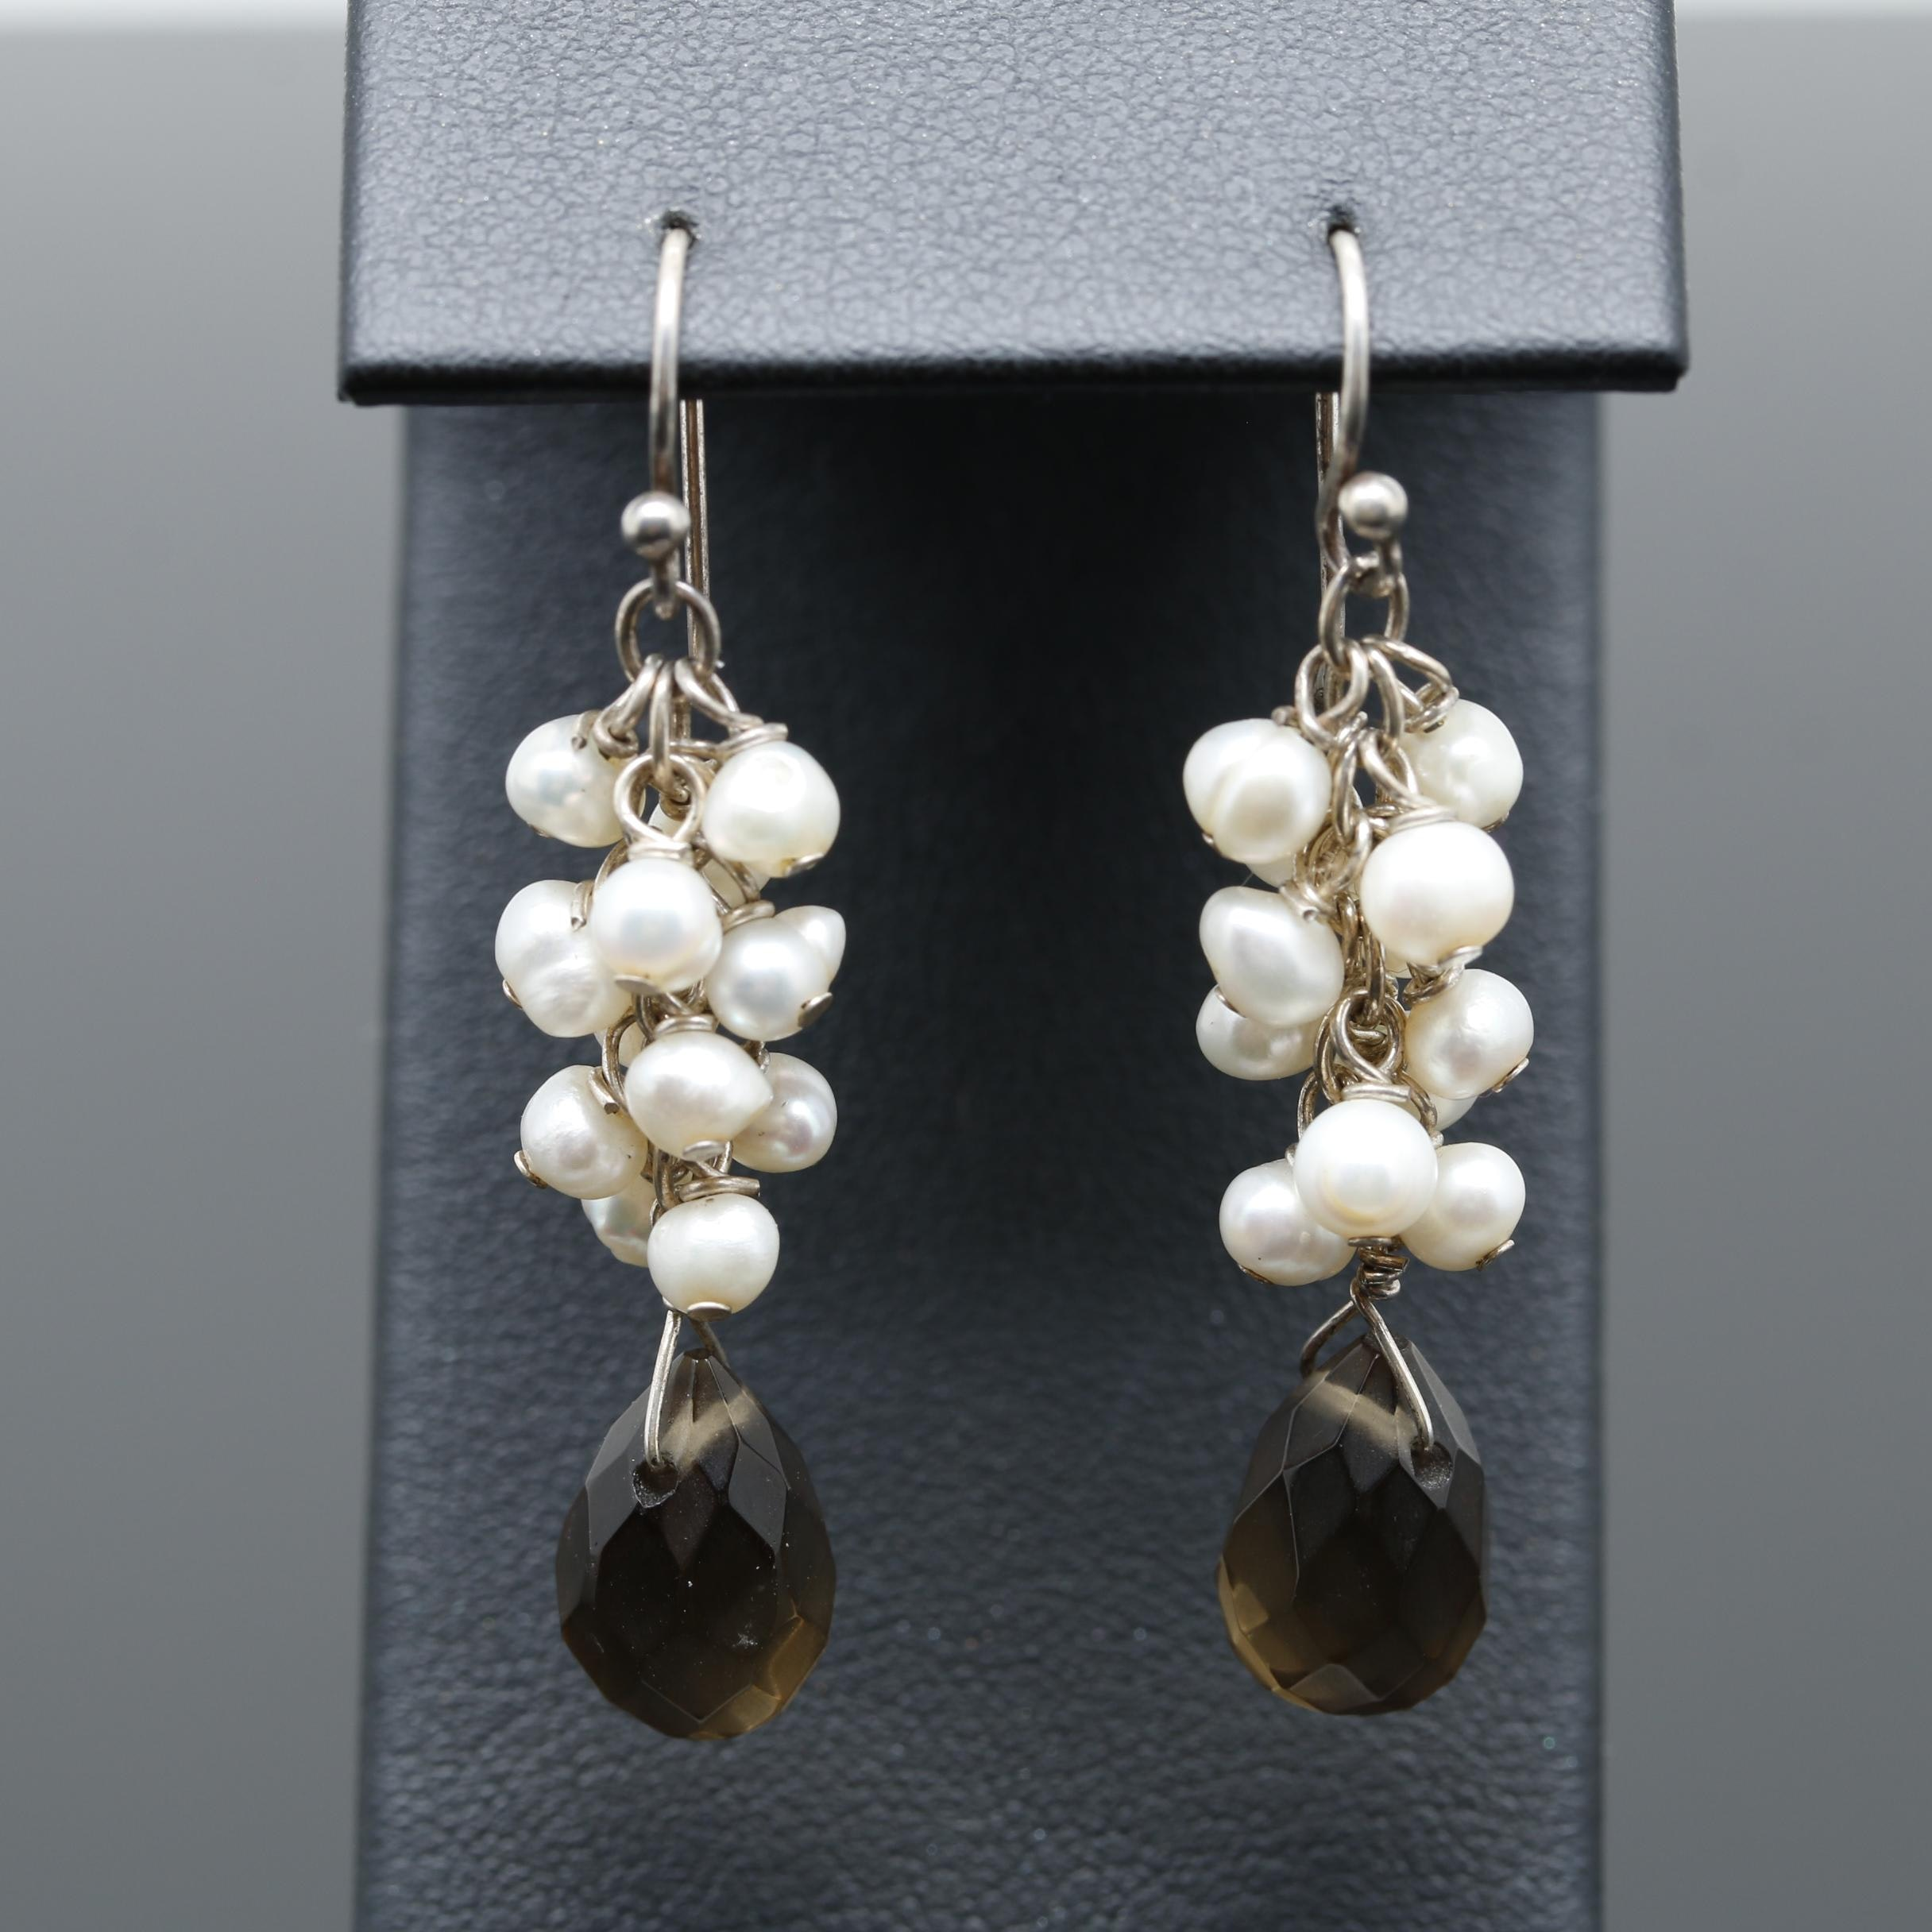 Sterling Silver Glass and Cultured Pearl Earrings